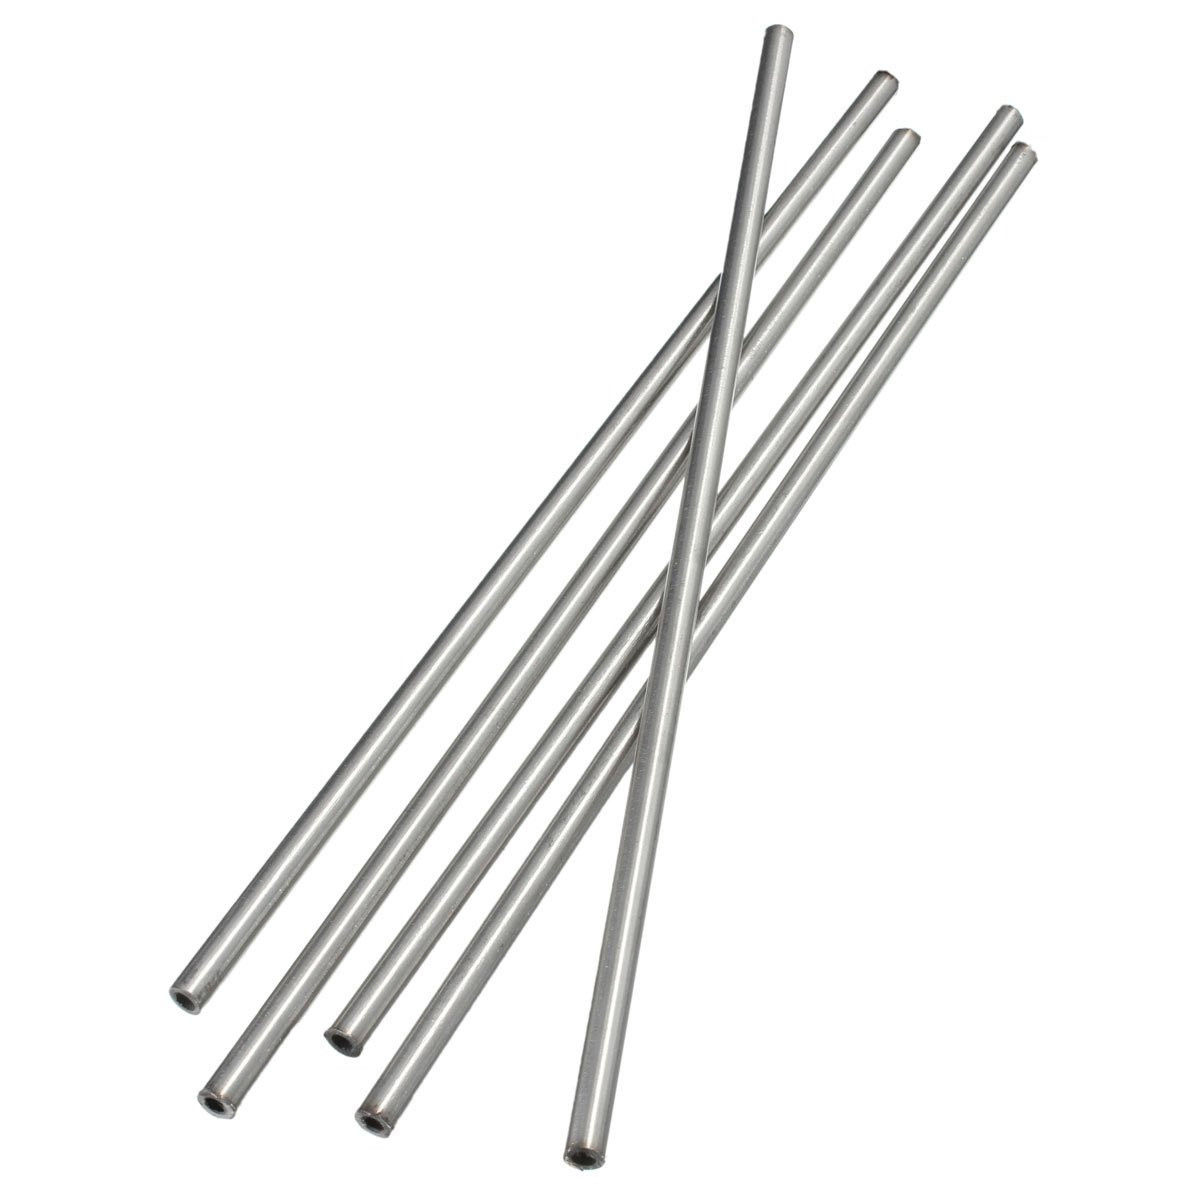 1pc Mayitr 304 Seamless Stainless Steel Capillary Tube With High Temperature Resistance 6mm OD 4mm ID 250mm Length